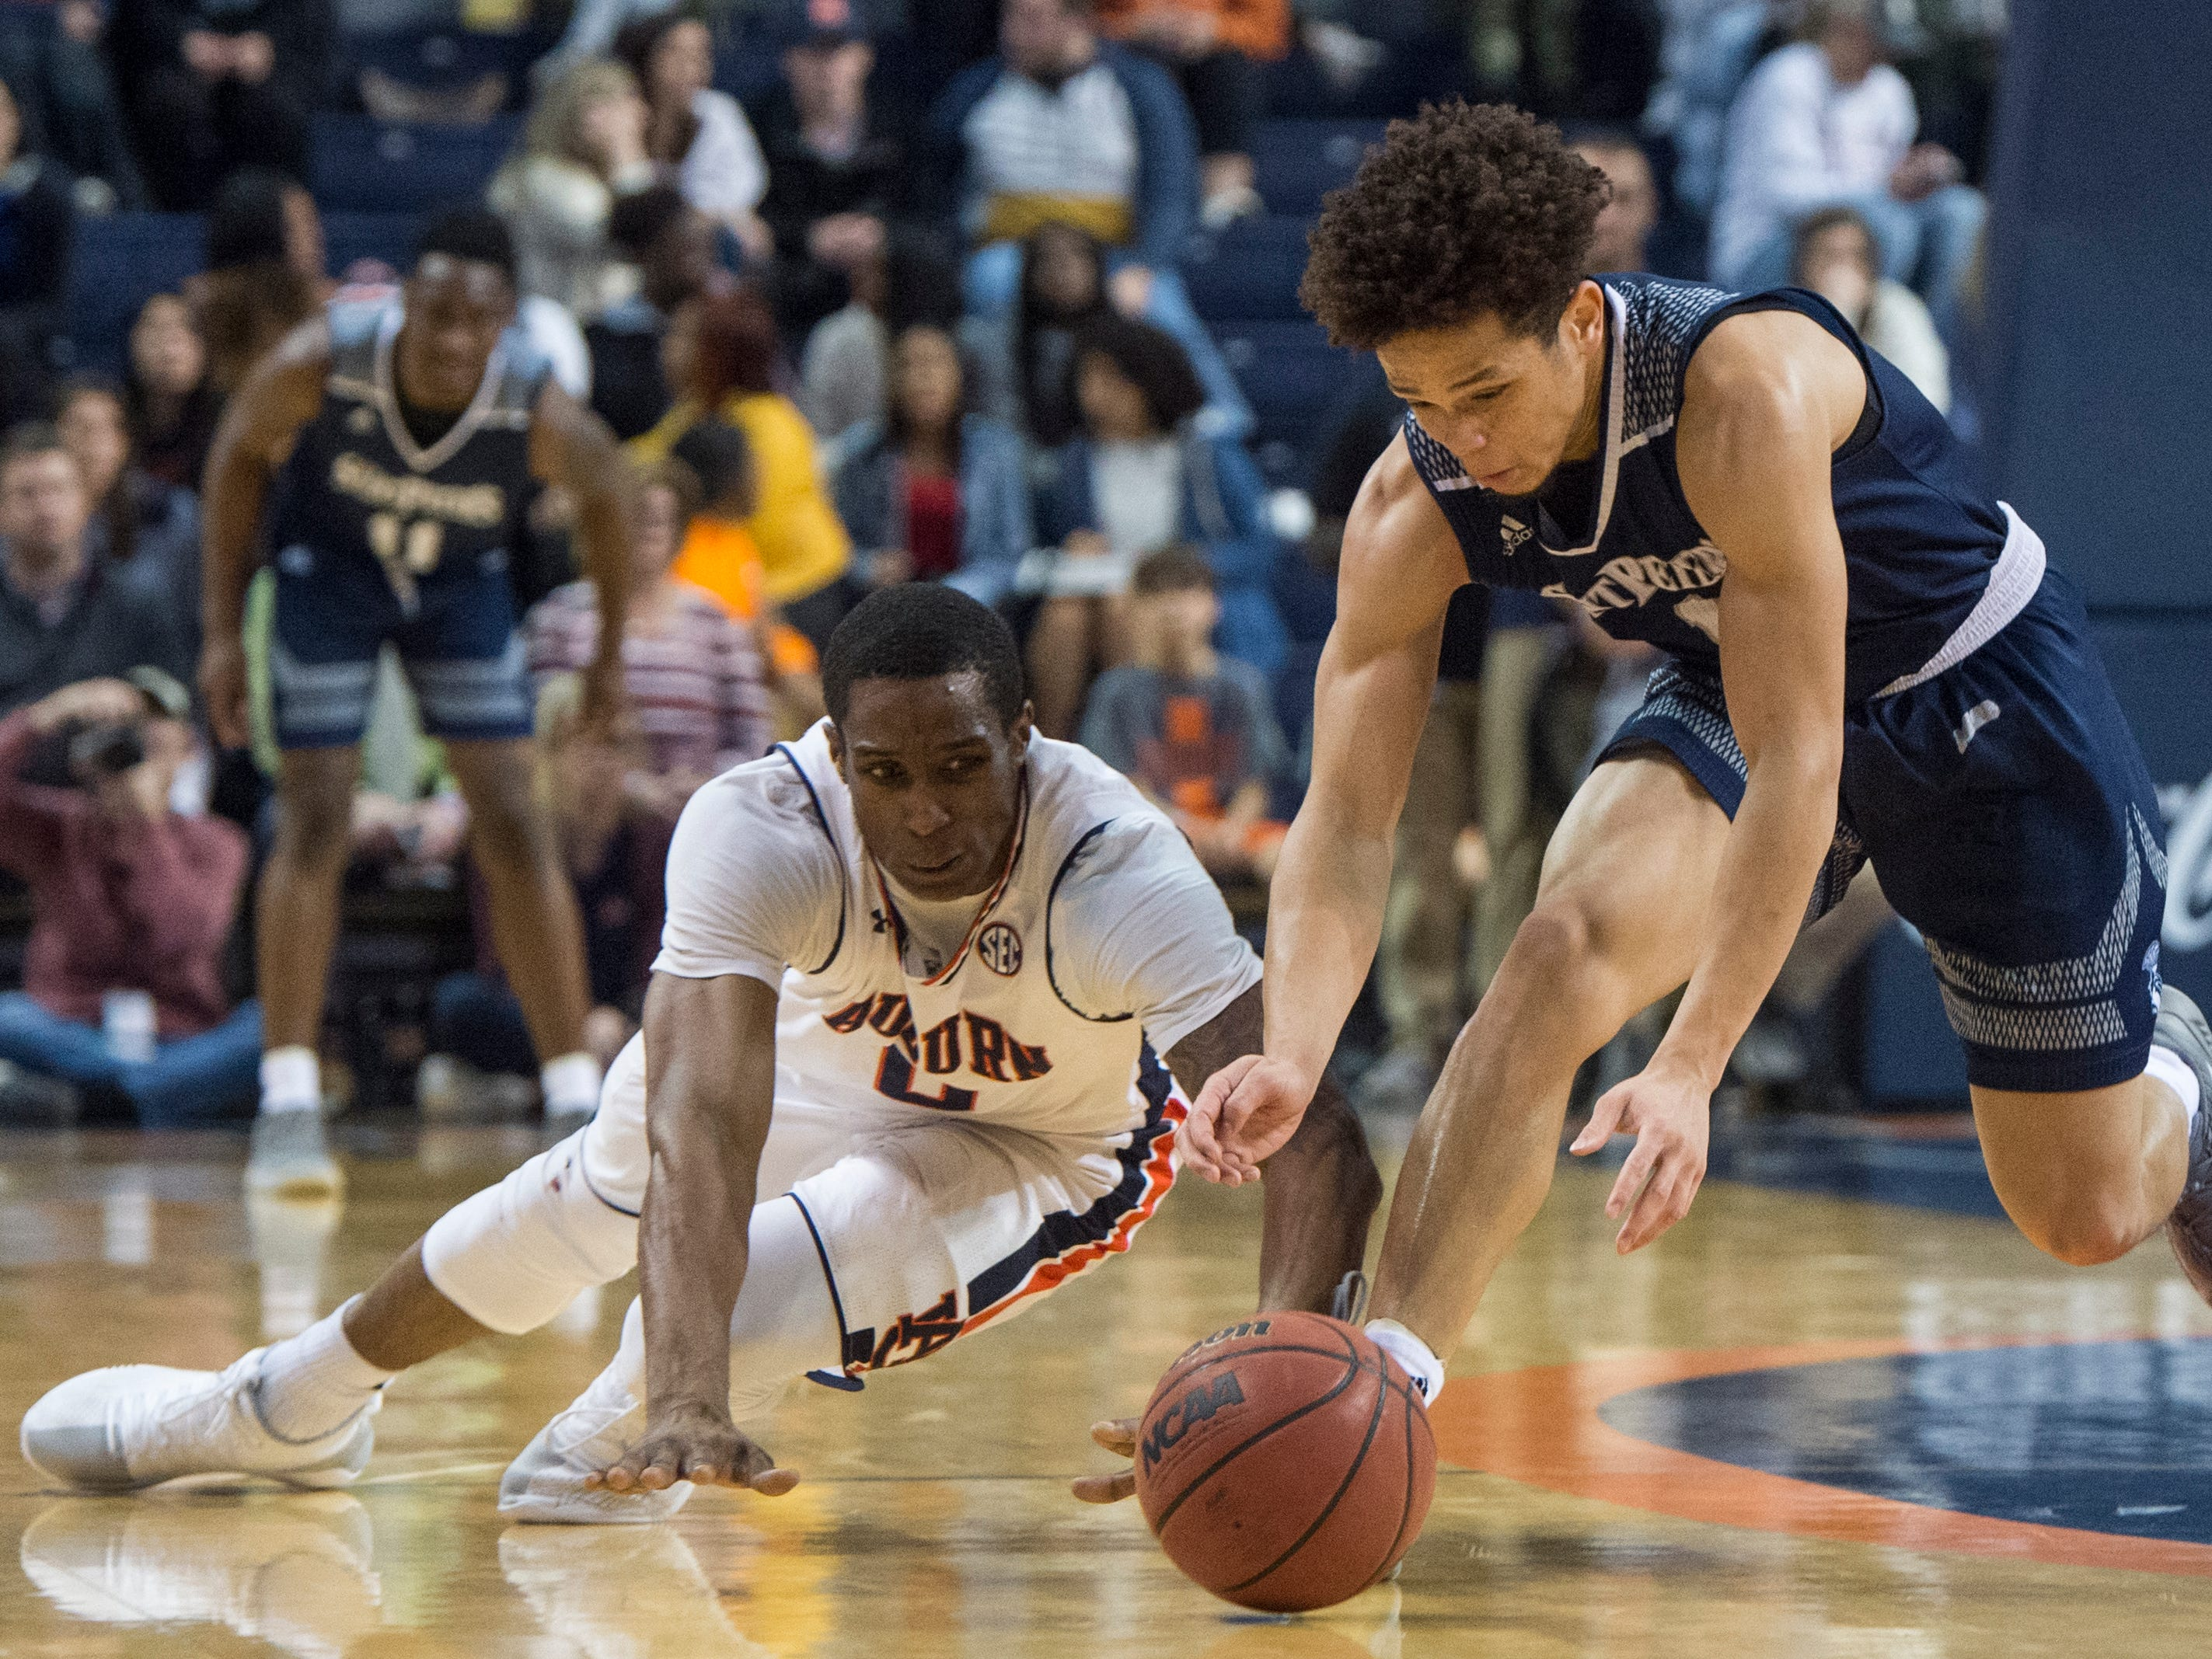 Auburn forward Horace Spencer (0) and Saint Peter's guard Davauhnte Turner (1) go after a loose ball at Auburn Arena in Auburn, Ala., on Wednesday, Nov. 28, 2018. Auburn defeated Saint Peter's 99-49.